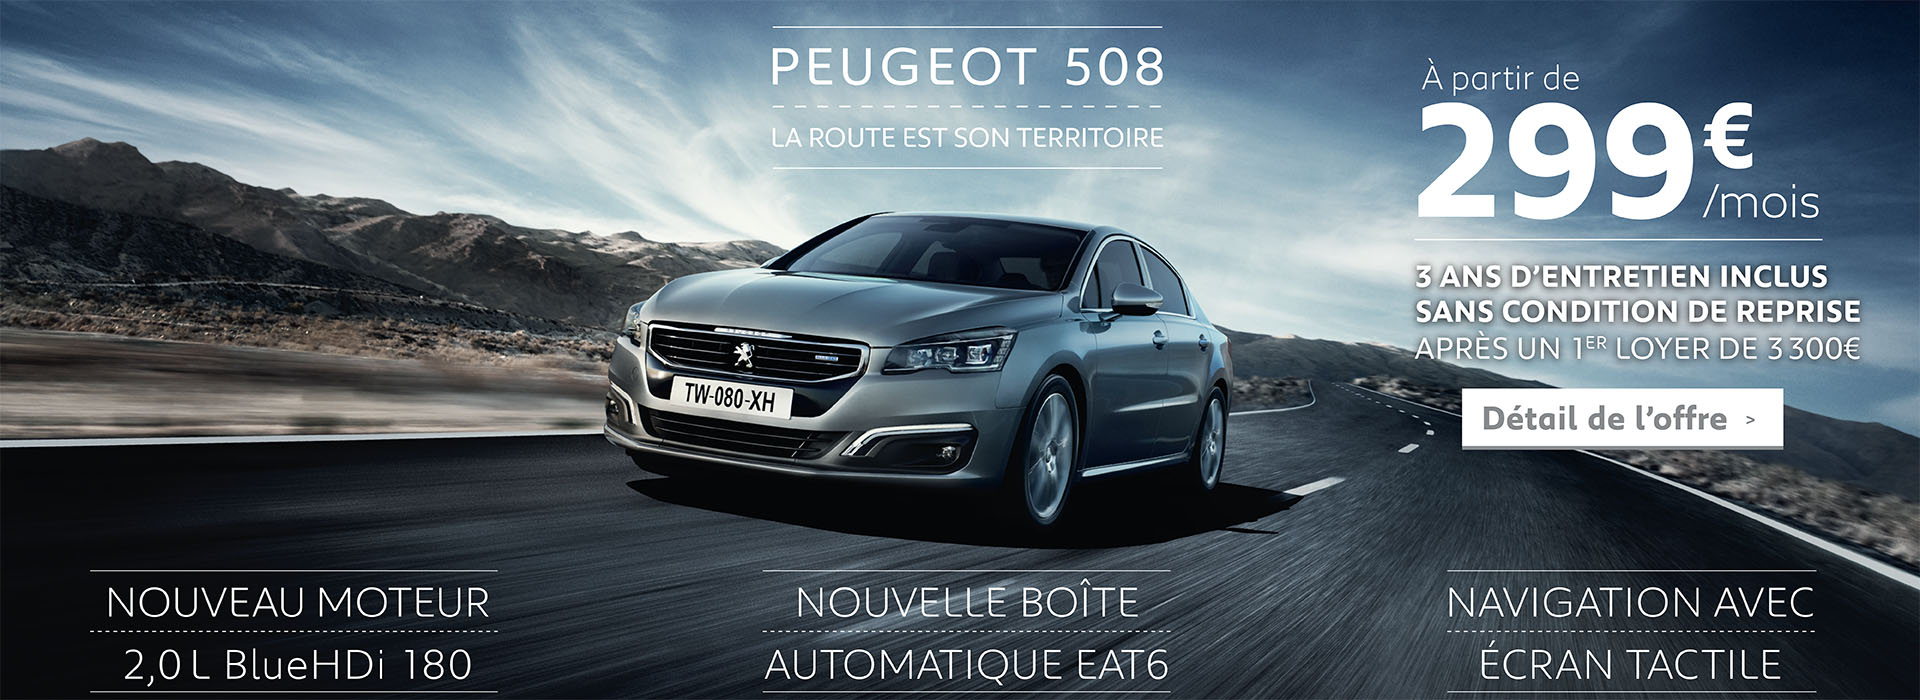 peugeot sedan vente voiture neuve vehicule occasion. Black Bedroom Furniture Sets. Home Design Ideas